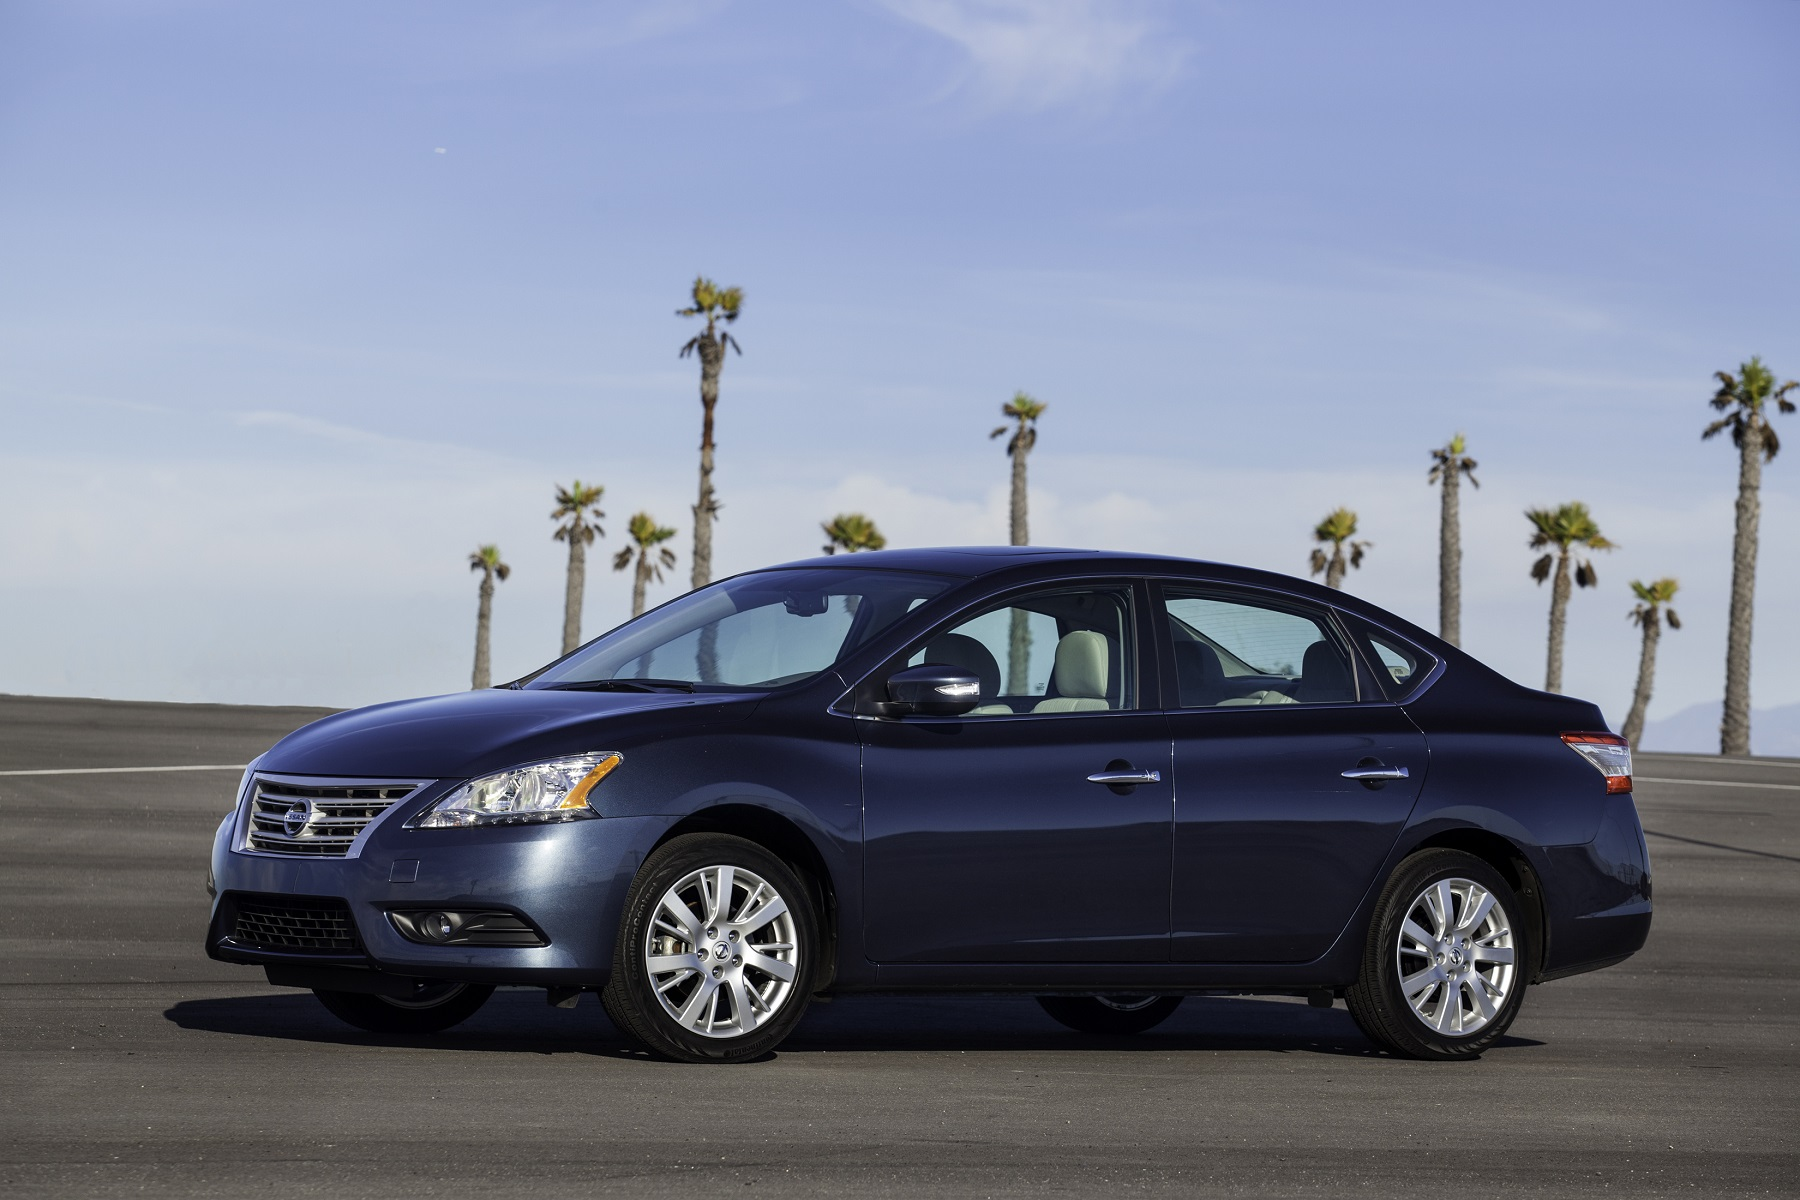 Manufacturer photo: The Sentra continues to offer class-above design standards inside and out, as well as efficiency in engineering